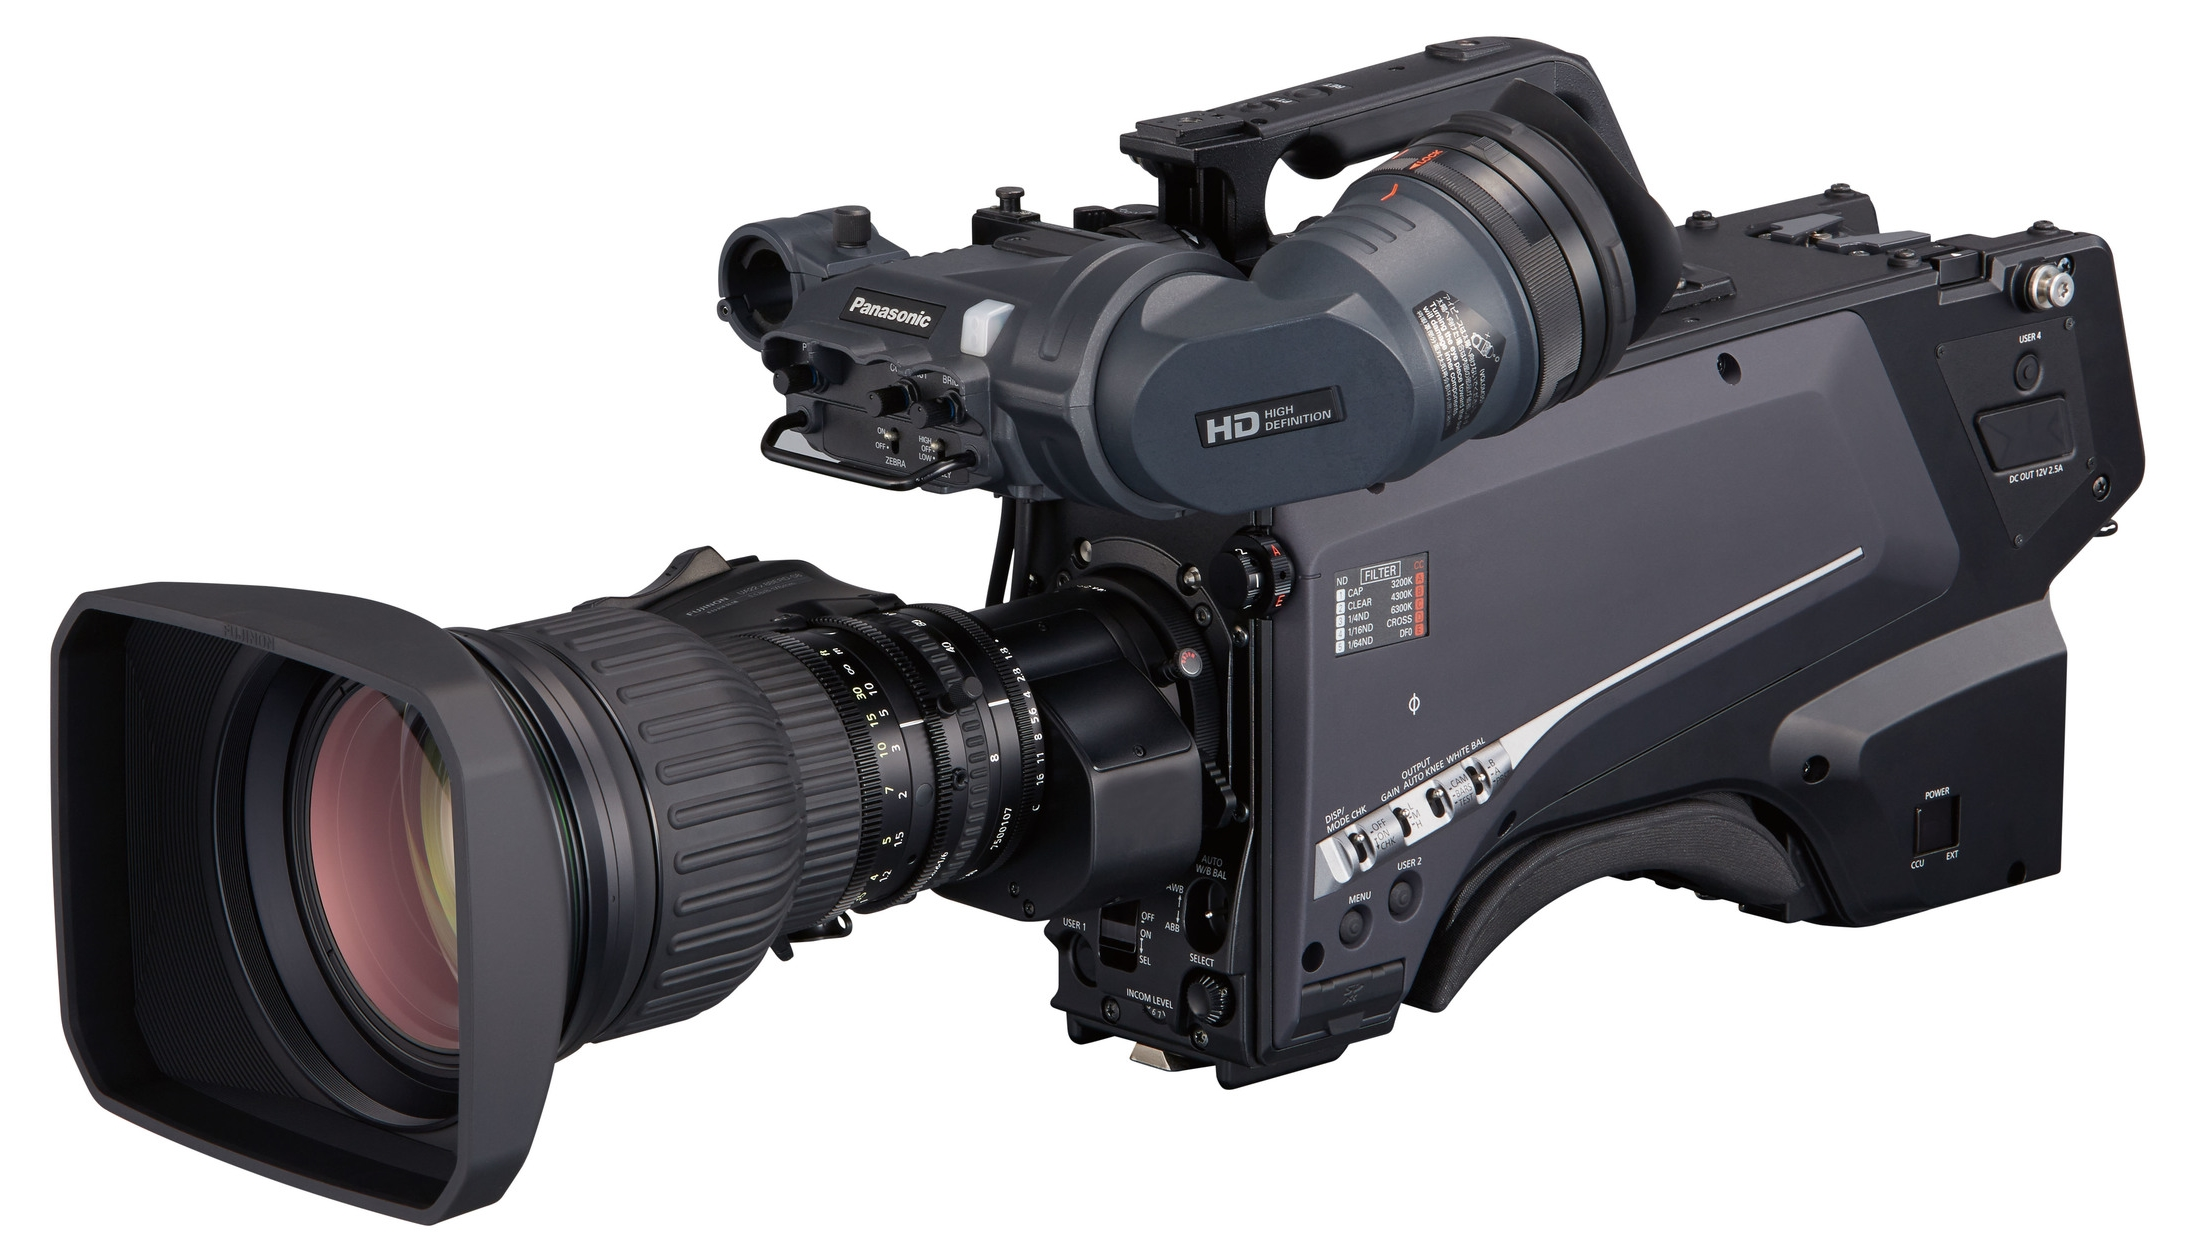 The AK-HC5000 is set to become Panasonic's flagship studio model.